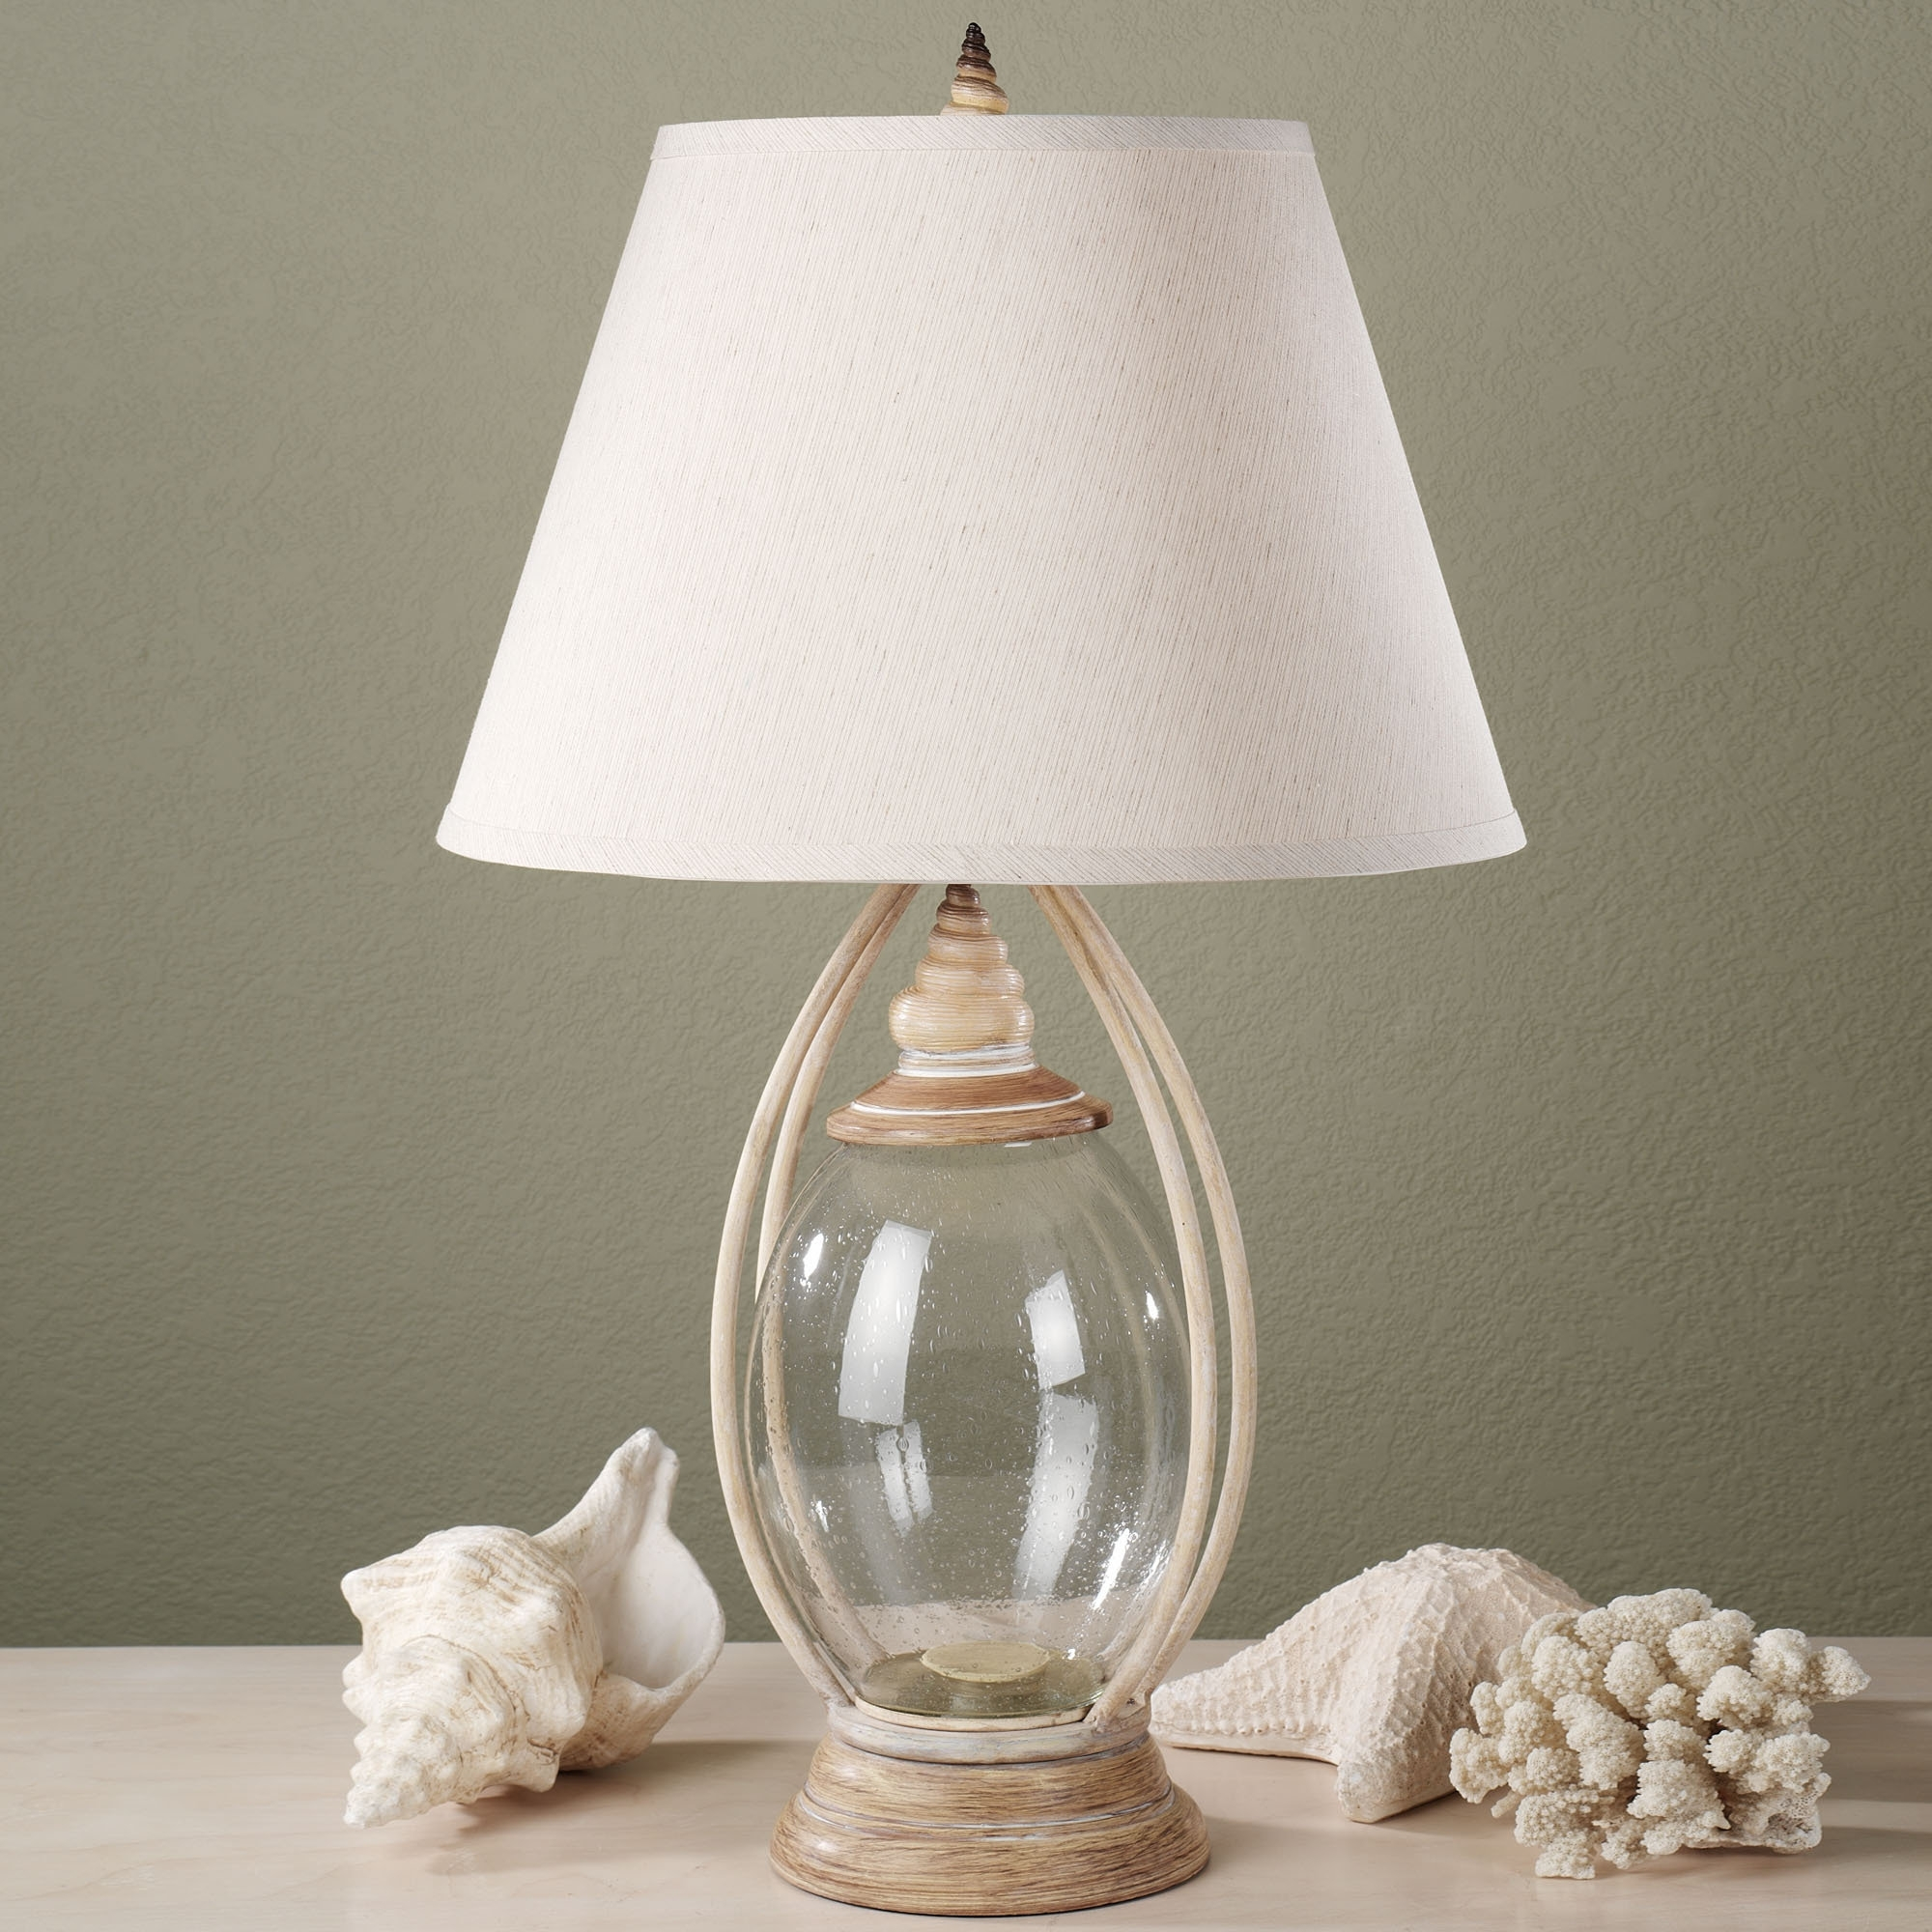 51 Most Fabulous Contemporary Floor Lamps Copper Table Lamp End Pertaining To Well Liked Living Room End Table Lamps (Gallery 9 of 20)